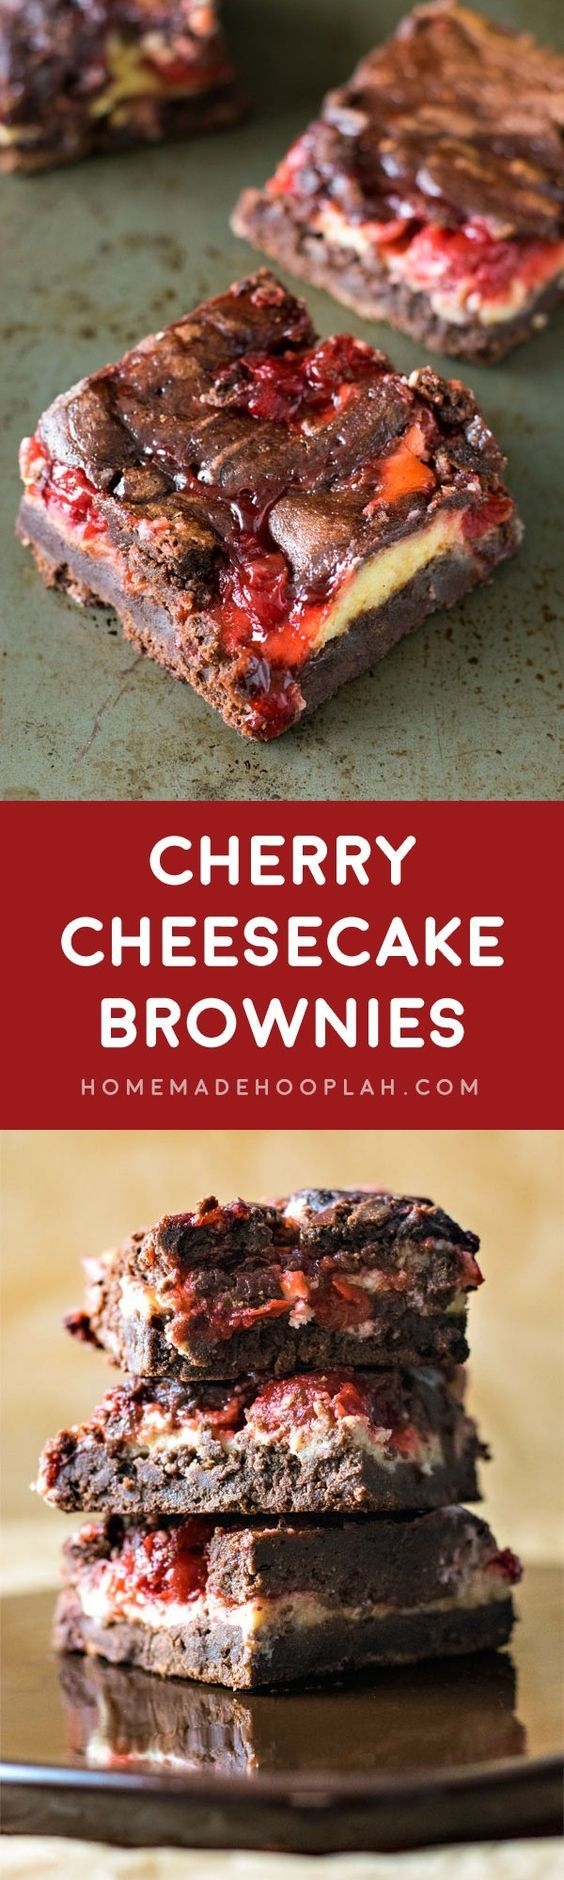 Cherry Cheesecake Brownies! The ultimate brownie recipe baked with swirls of cheesecake and cherry pie filling.